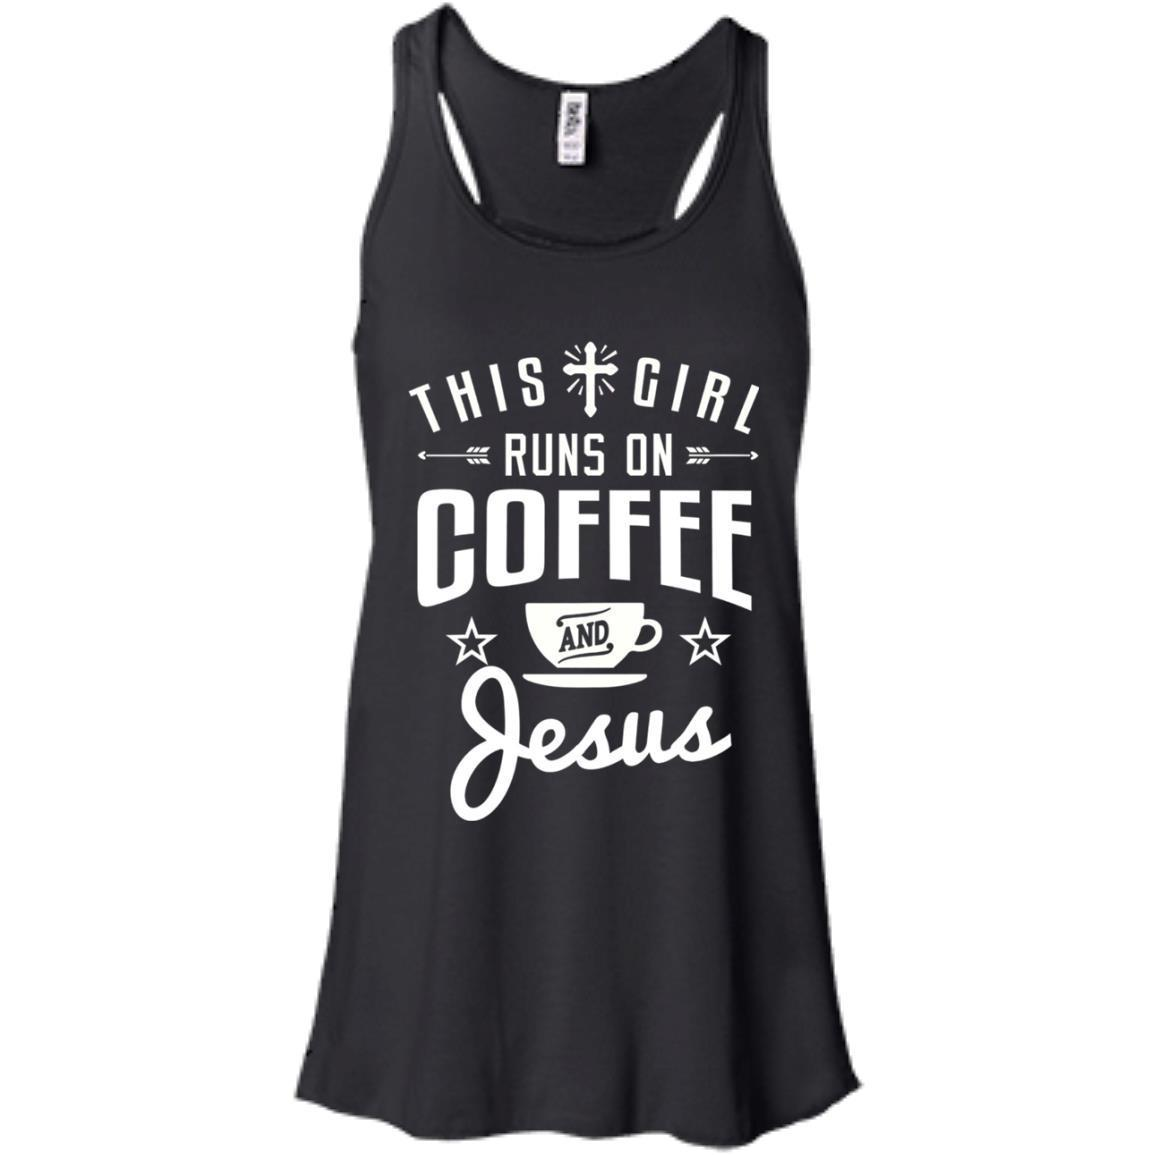 This Girl Runs on Coffee and Jesus  Ladies's Tank